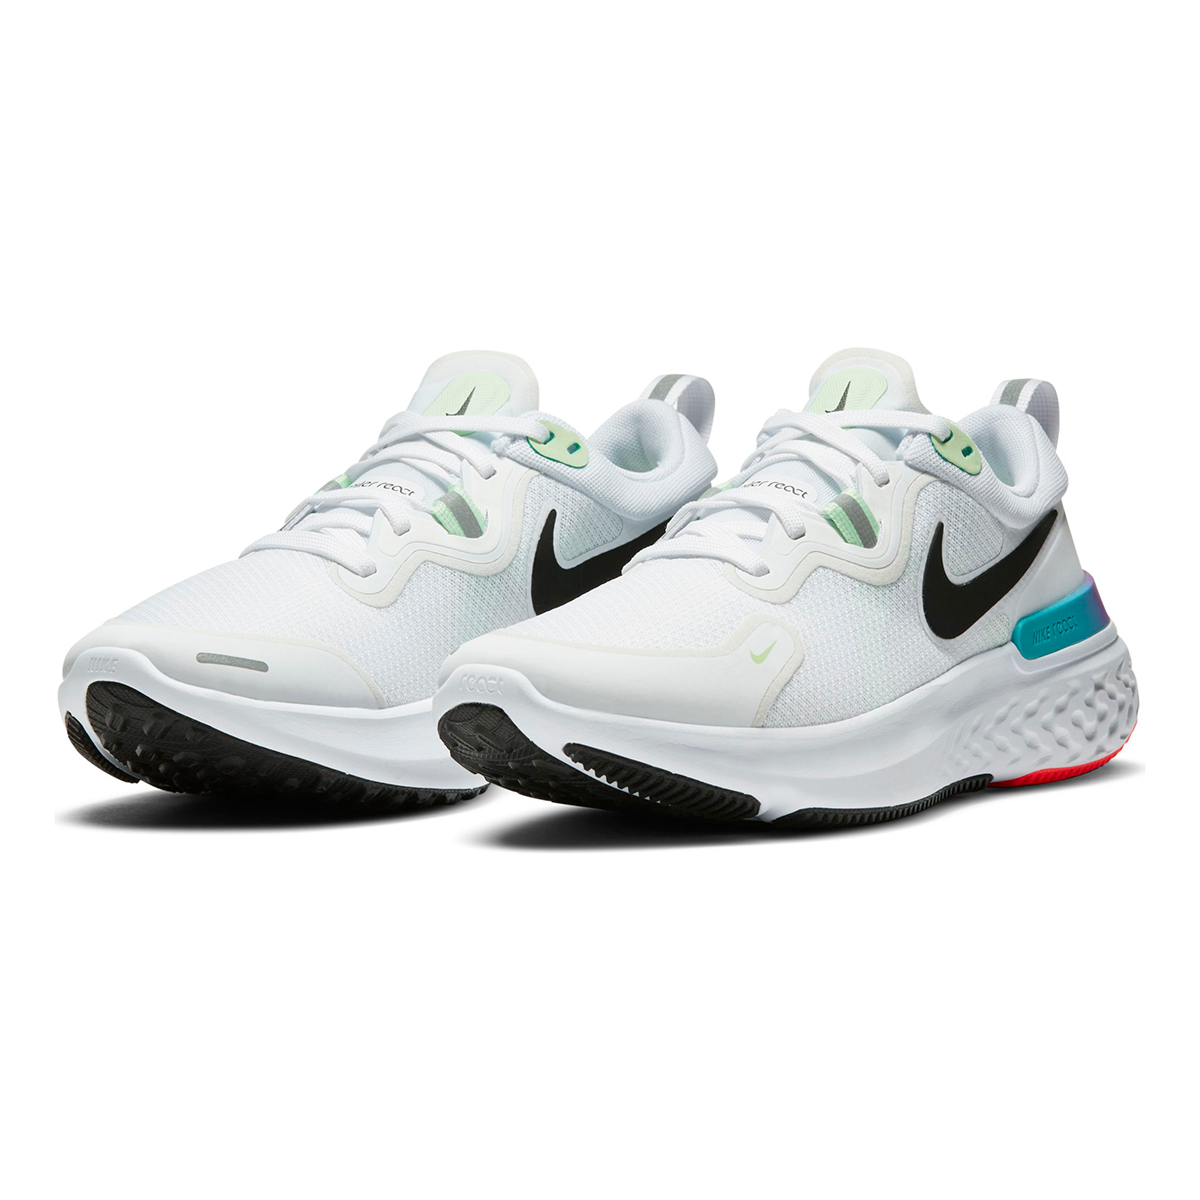 Women's Nike React Miler Running Shoe - Color: White/Vapor Green/Hyper Jade/Black - Size: 5 - Width: Regular, White/Vapor Green/Hyper Jade/Black, large, image 4